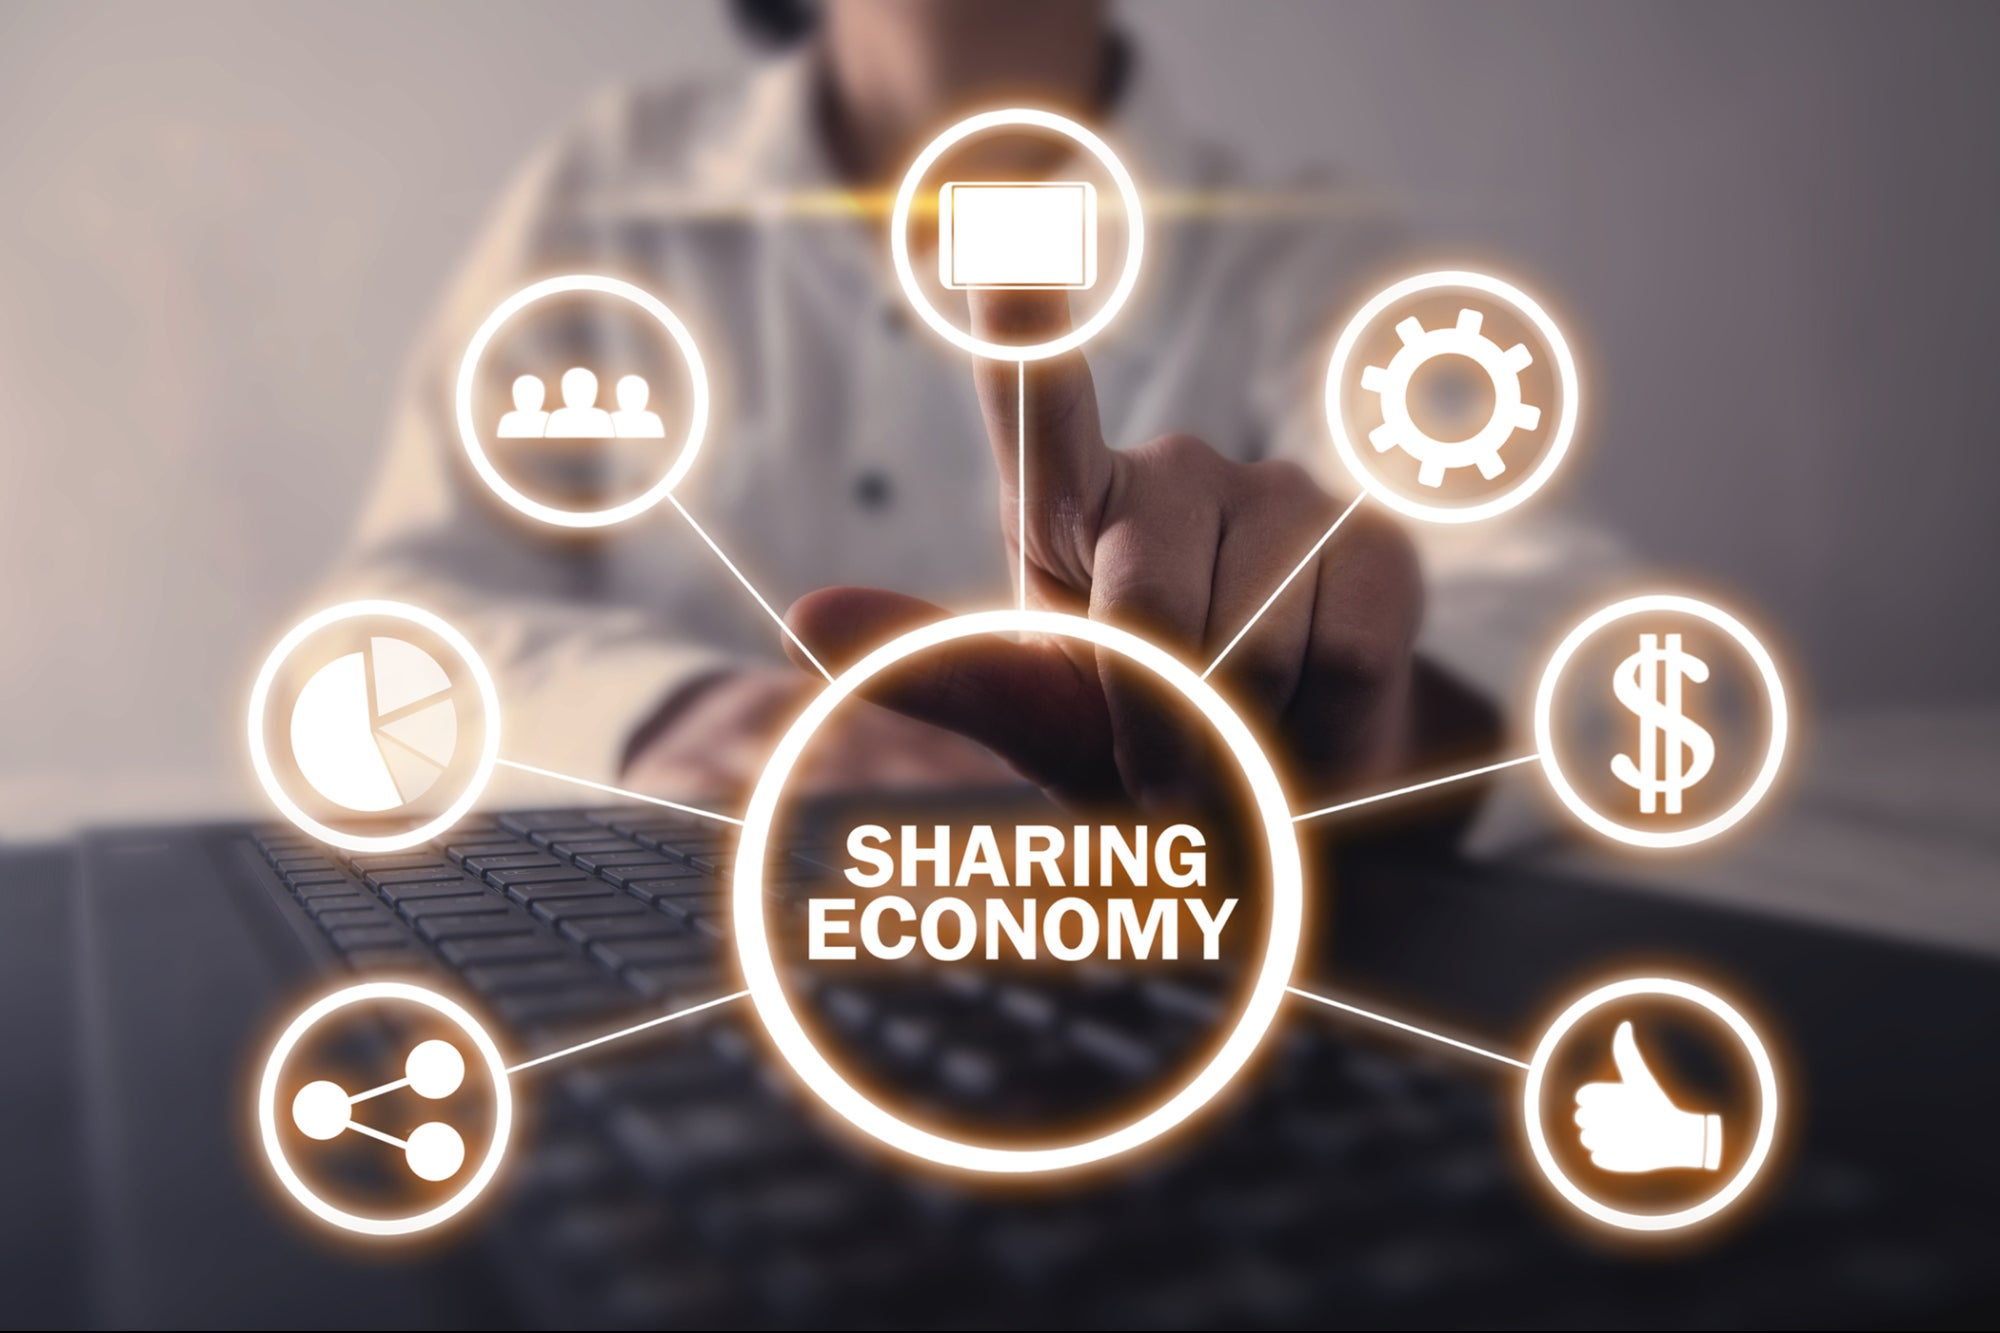 A New Growth Model for the Sharing Economy